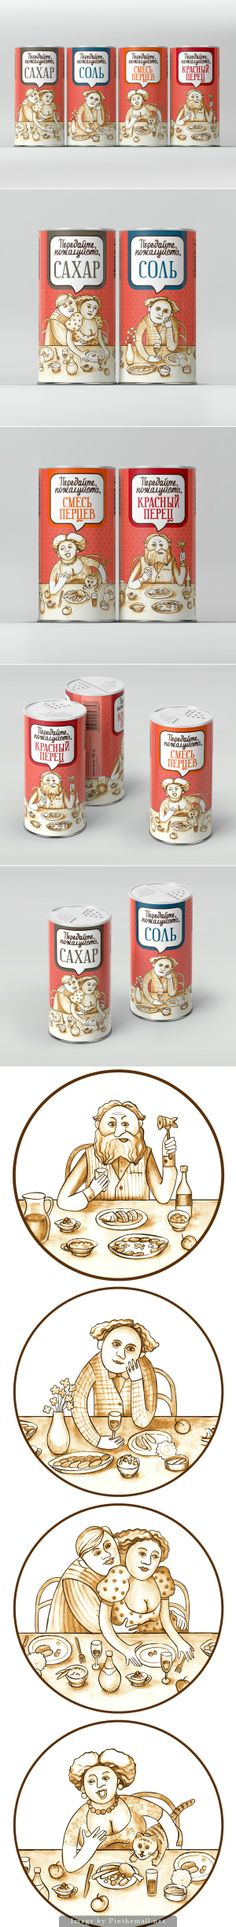 Could You Pass Me Please. Look closely at these #packaging #illustrations : ) PD